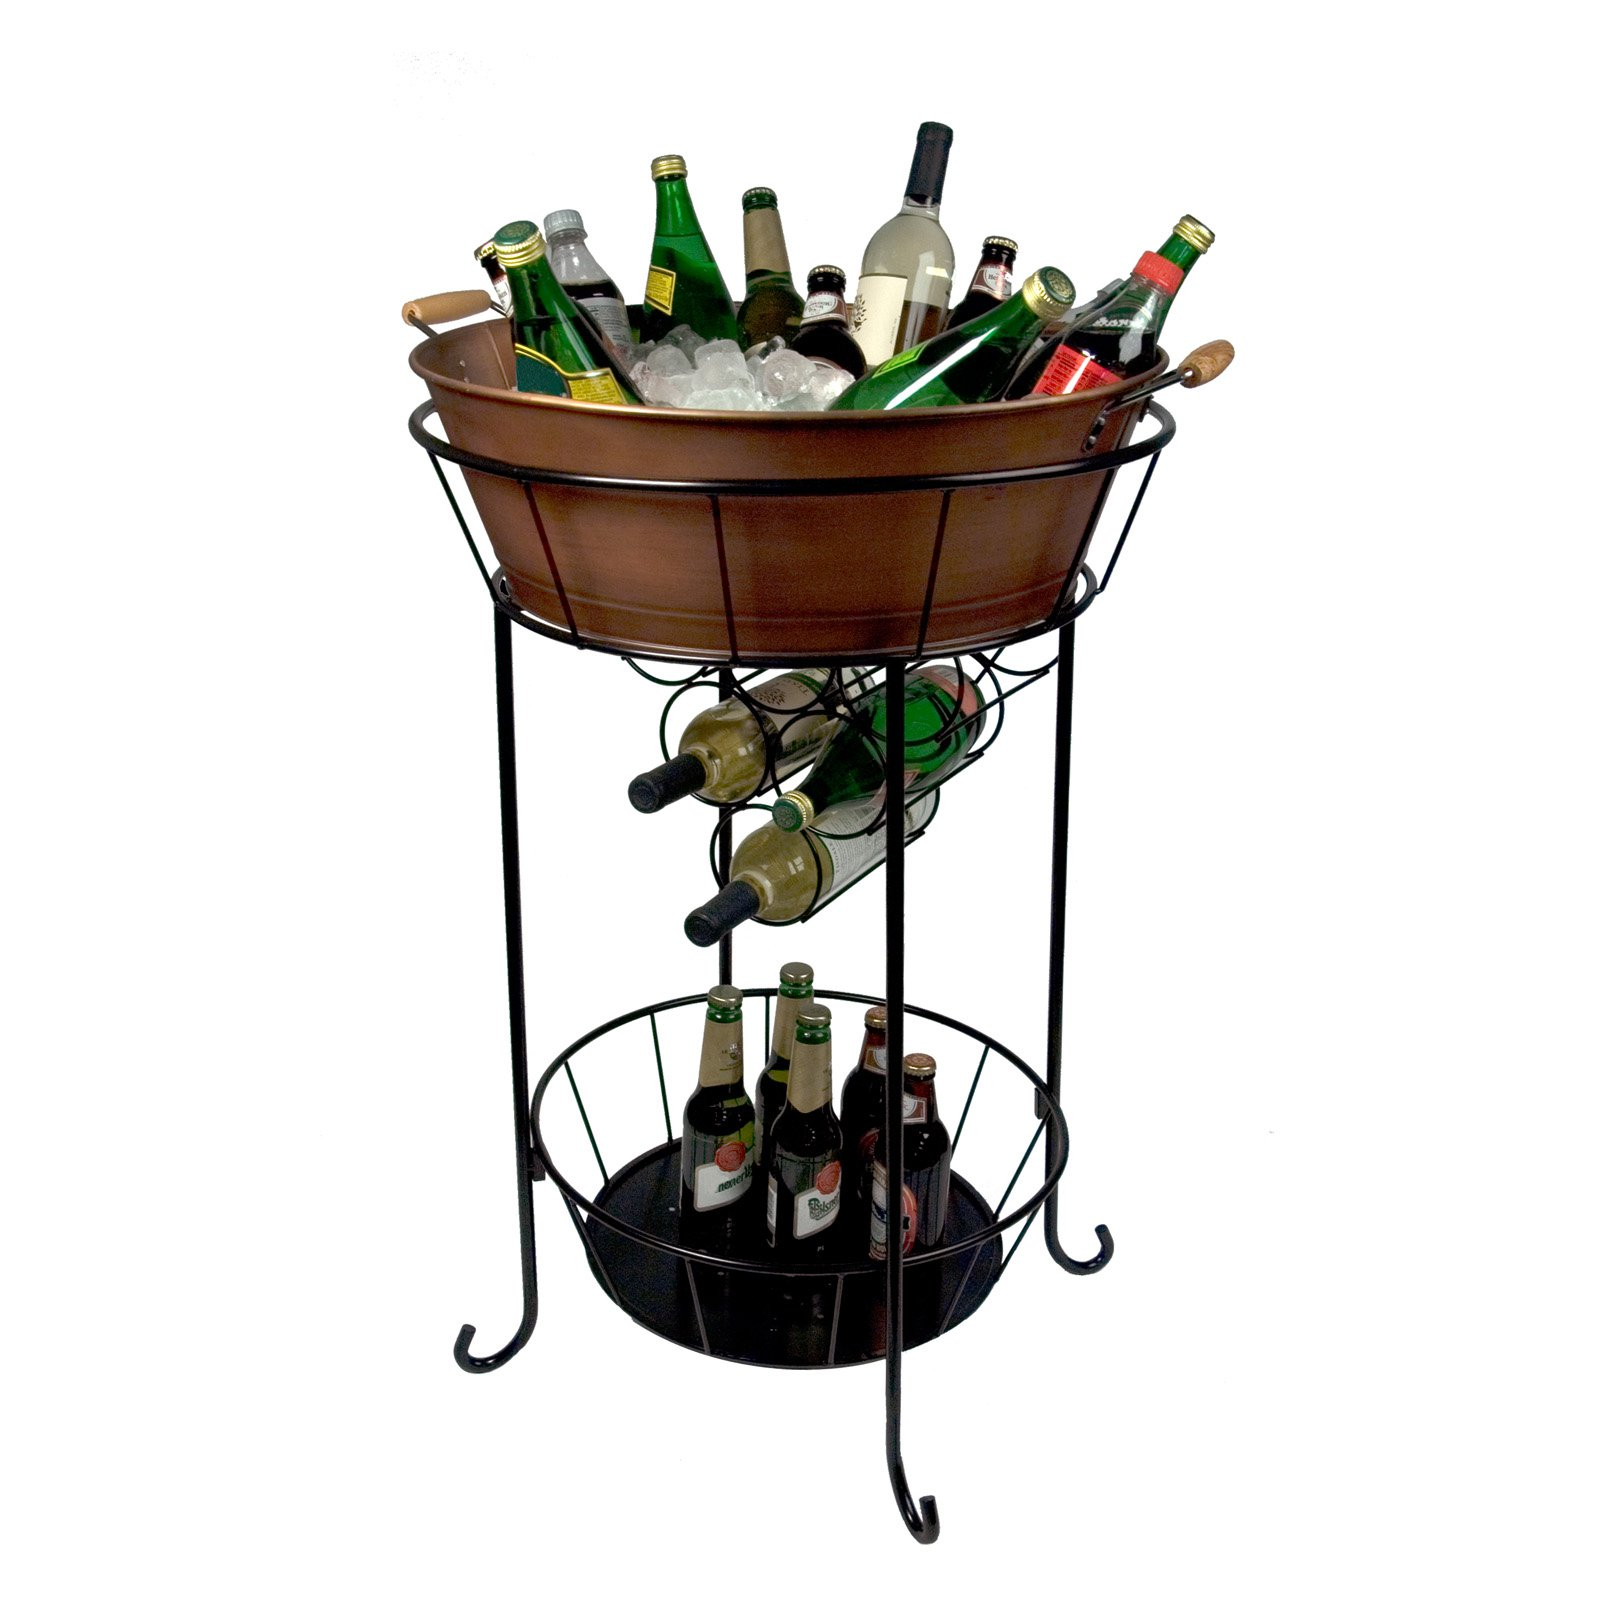 Lovely Outdoor Ice Bucket On Stand   Outdoor Designs VJ42